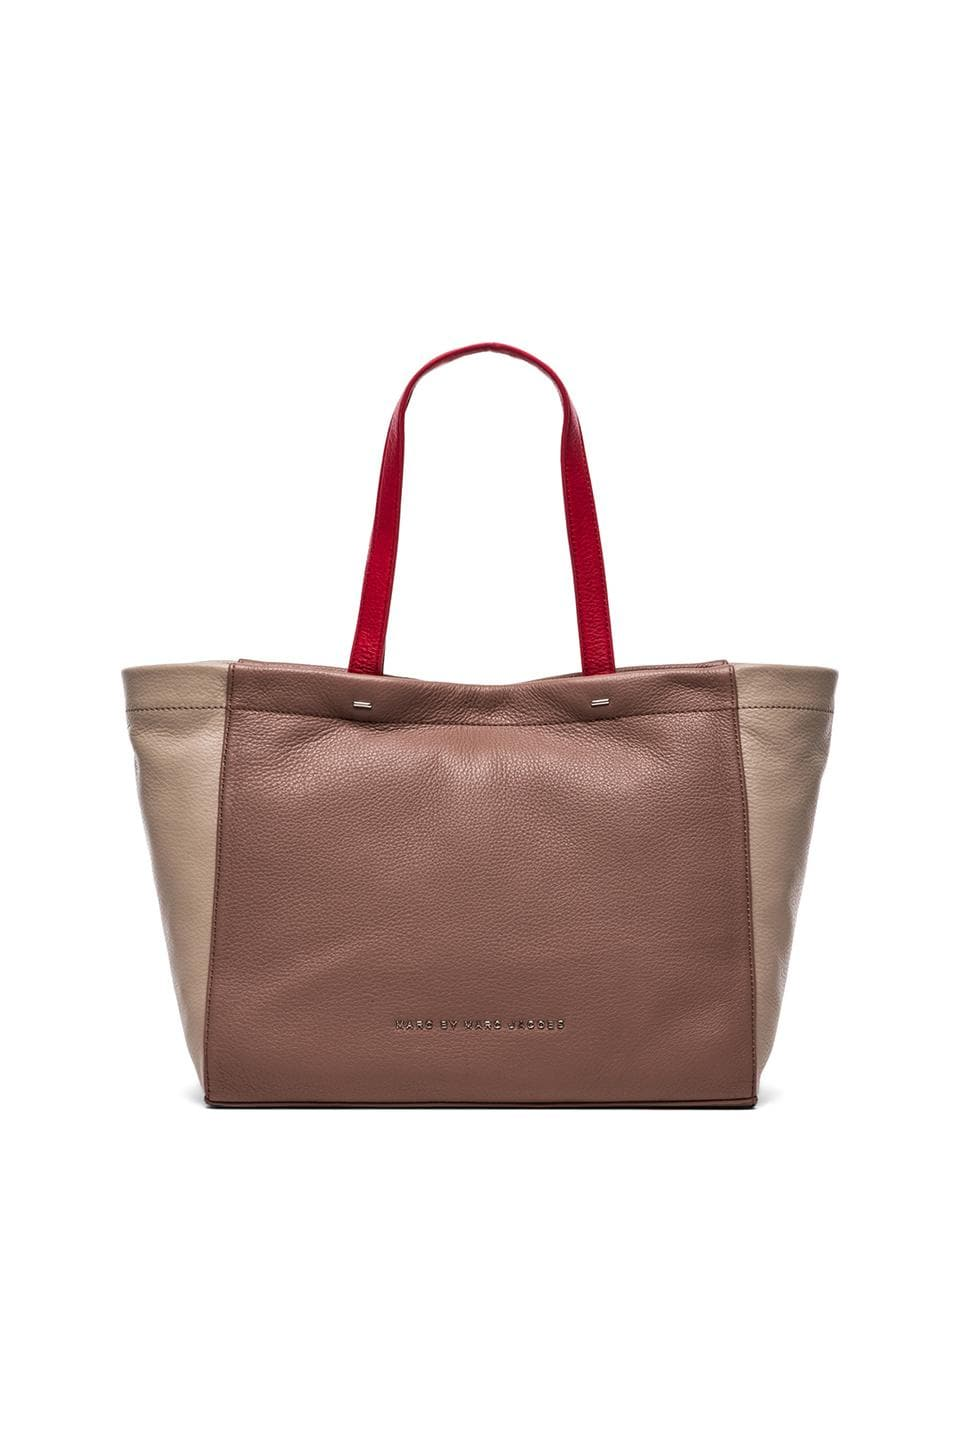 Marc by Marc Jacobs What's the T Leather Tote in Woodland Multi